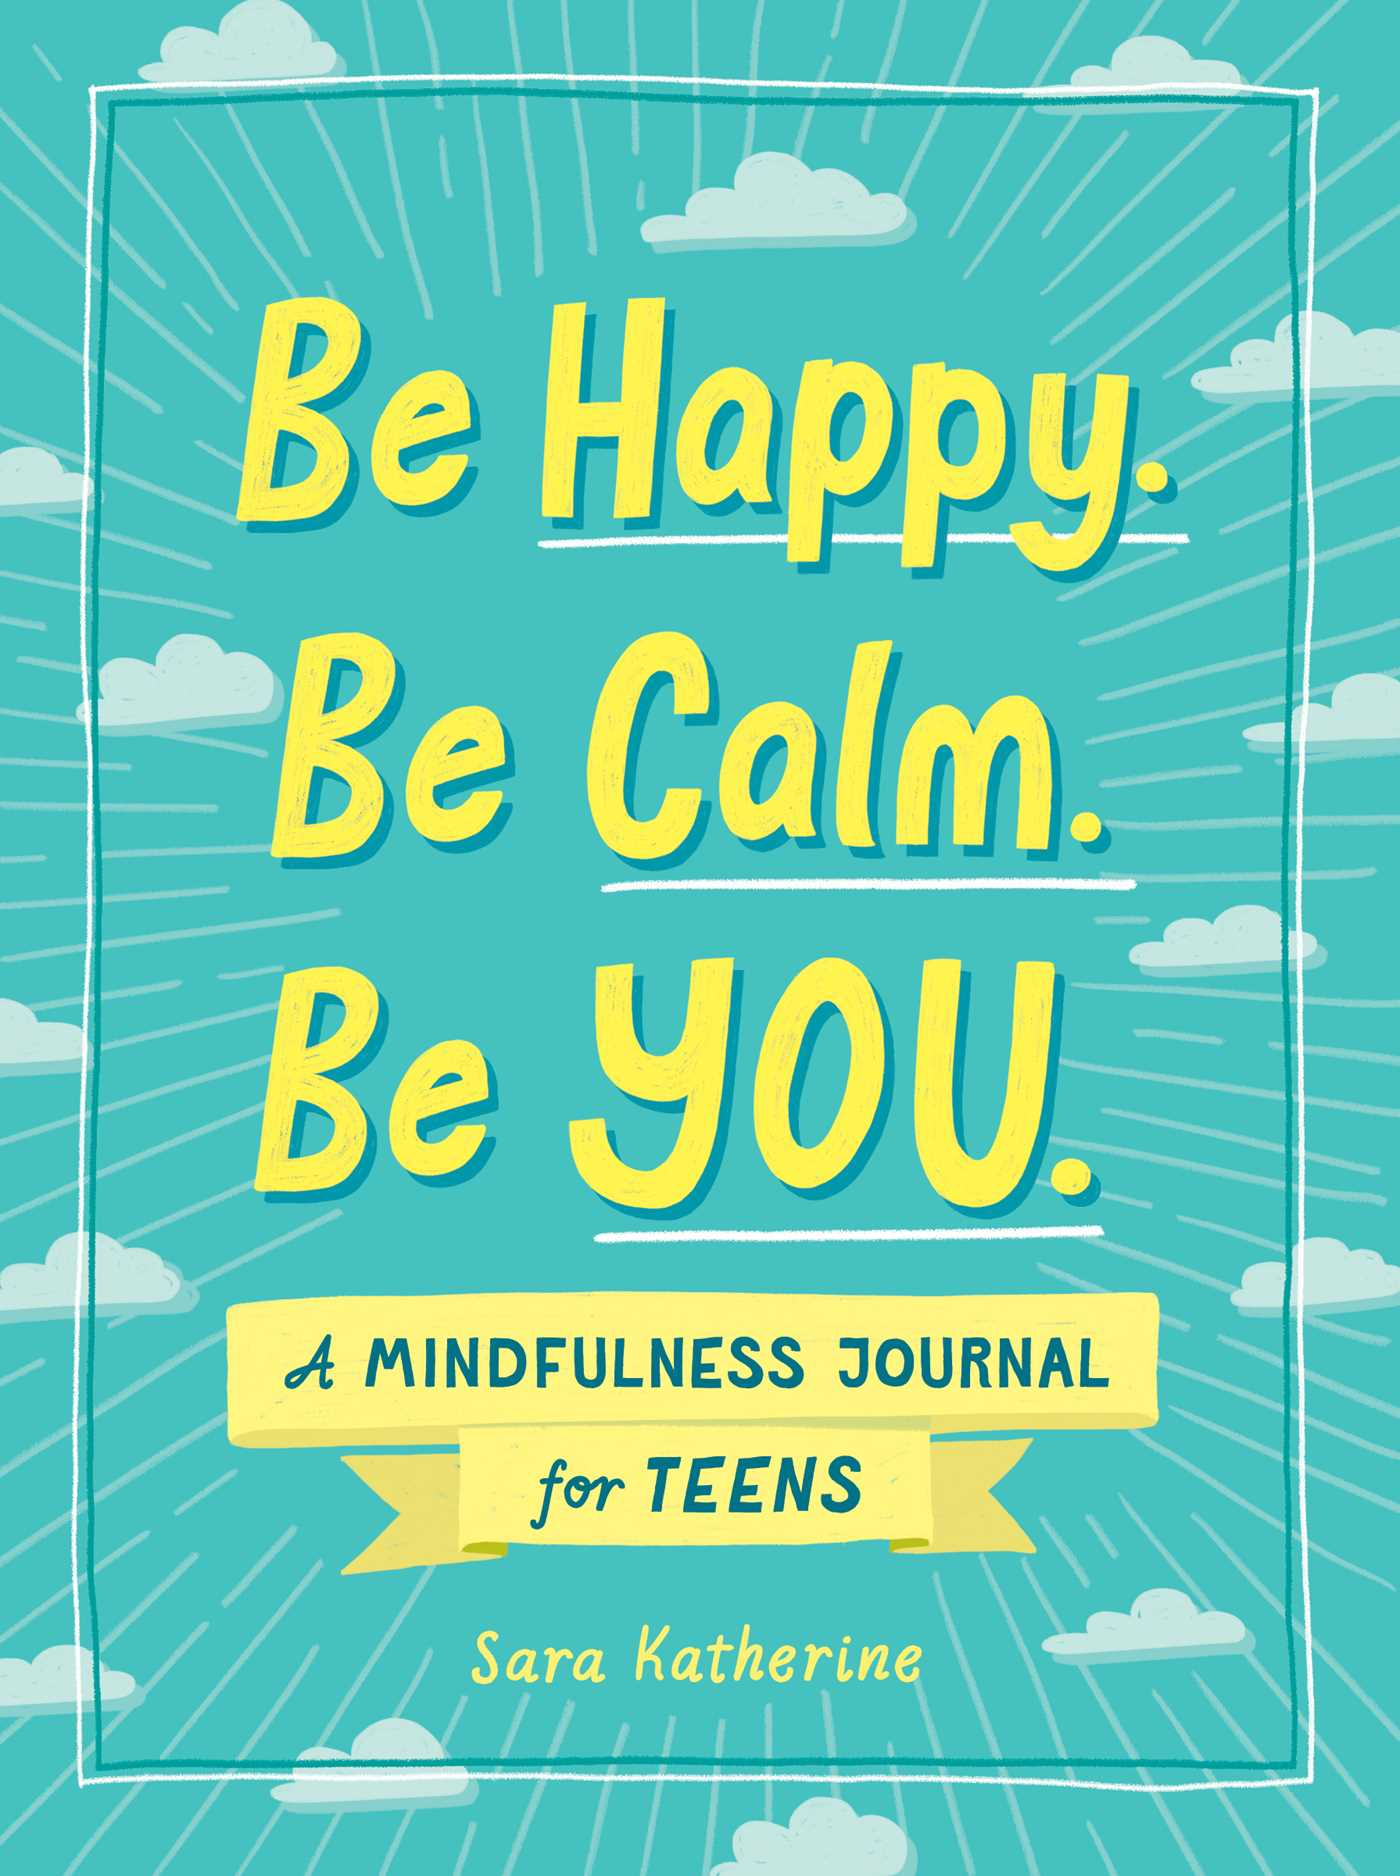 Be Happy. Be Calm. Be YOU.